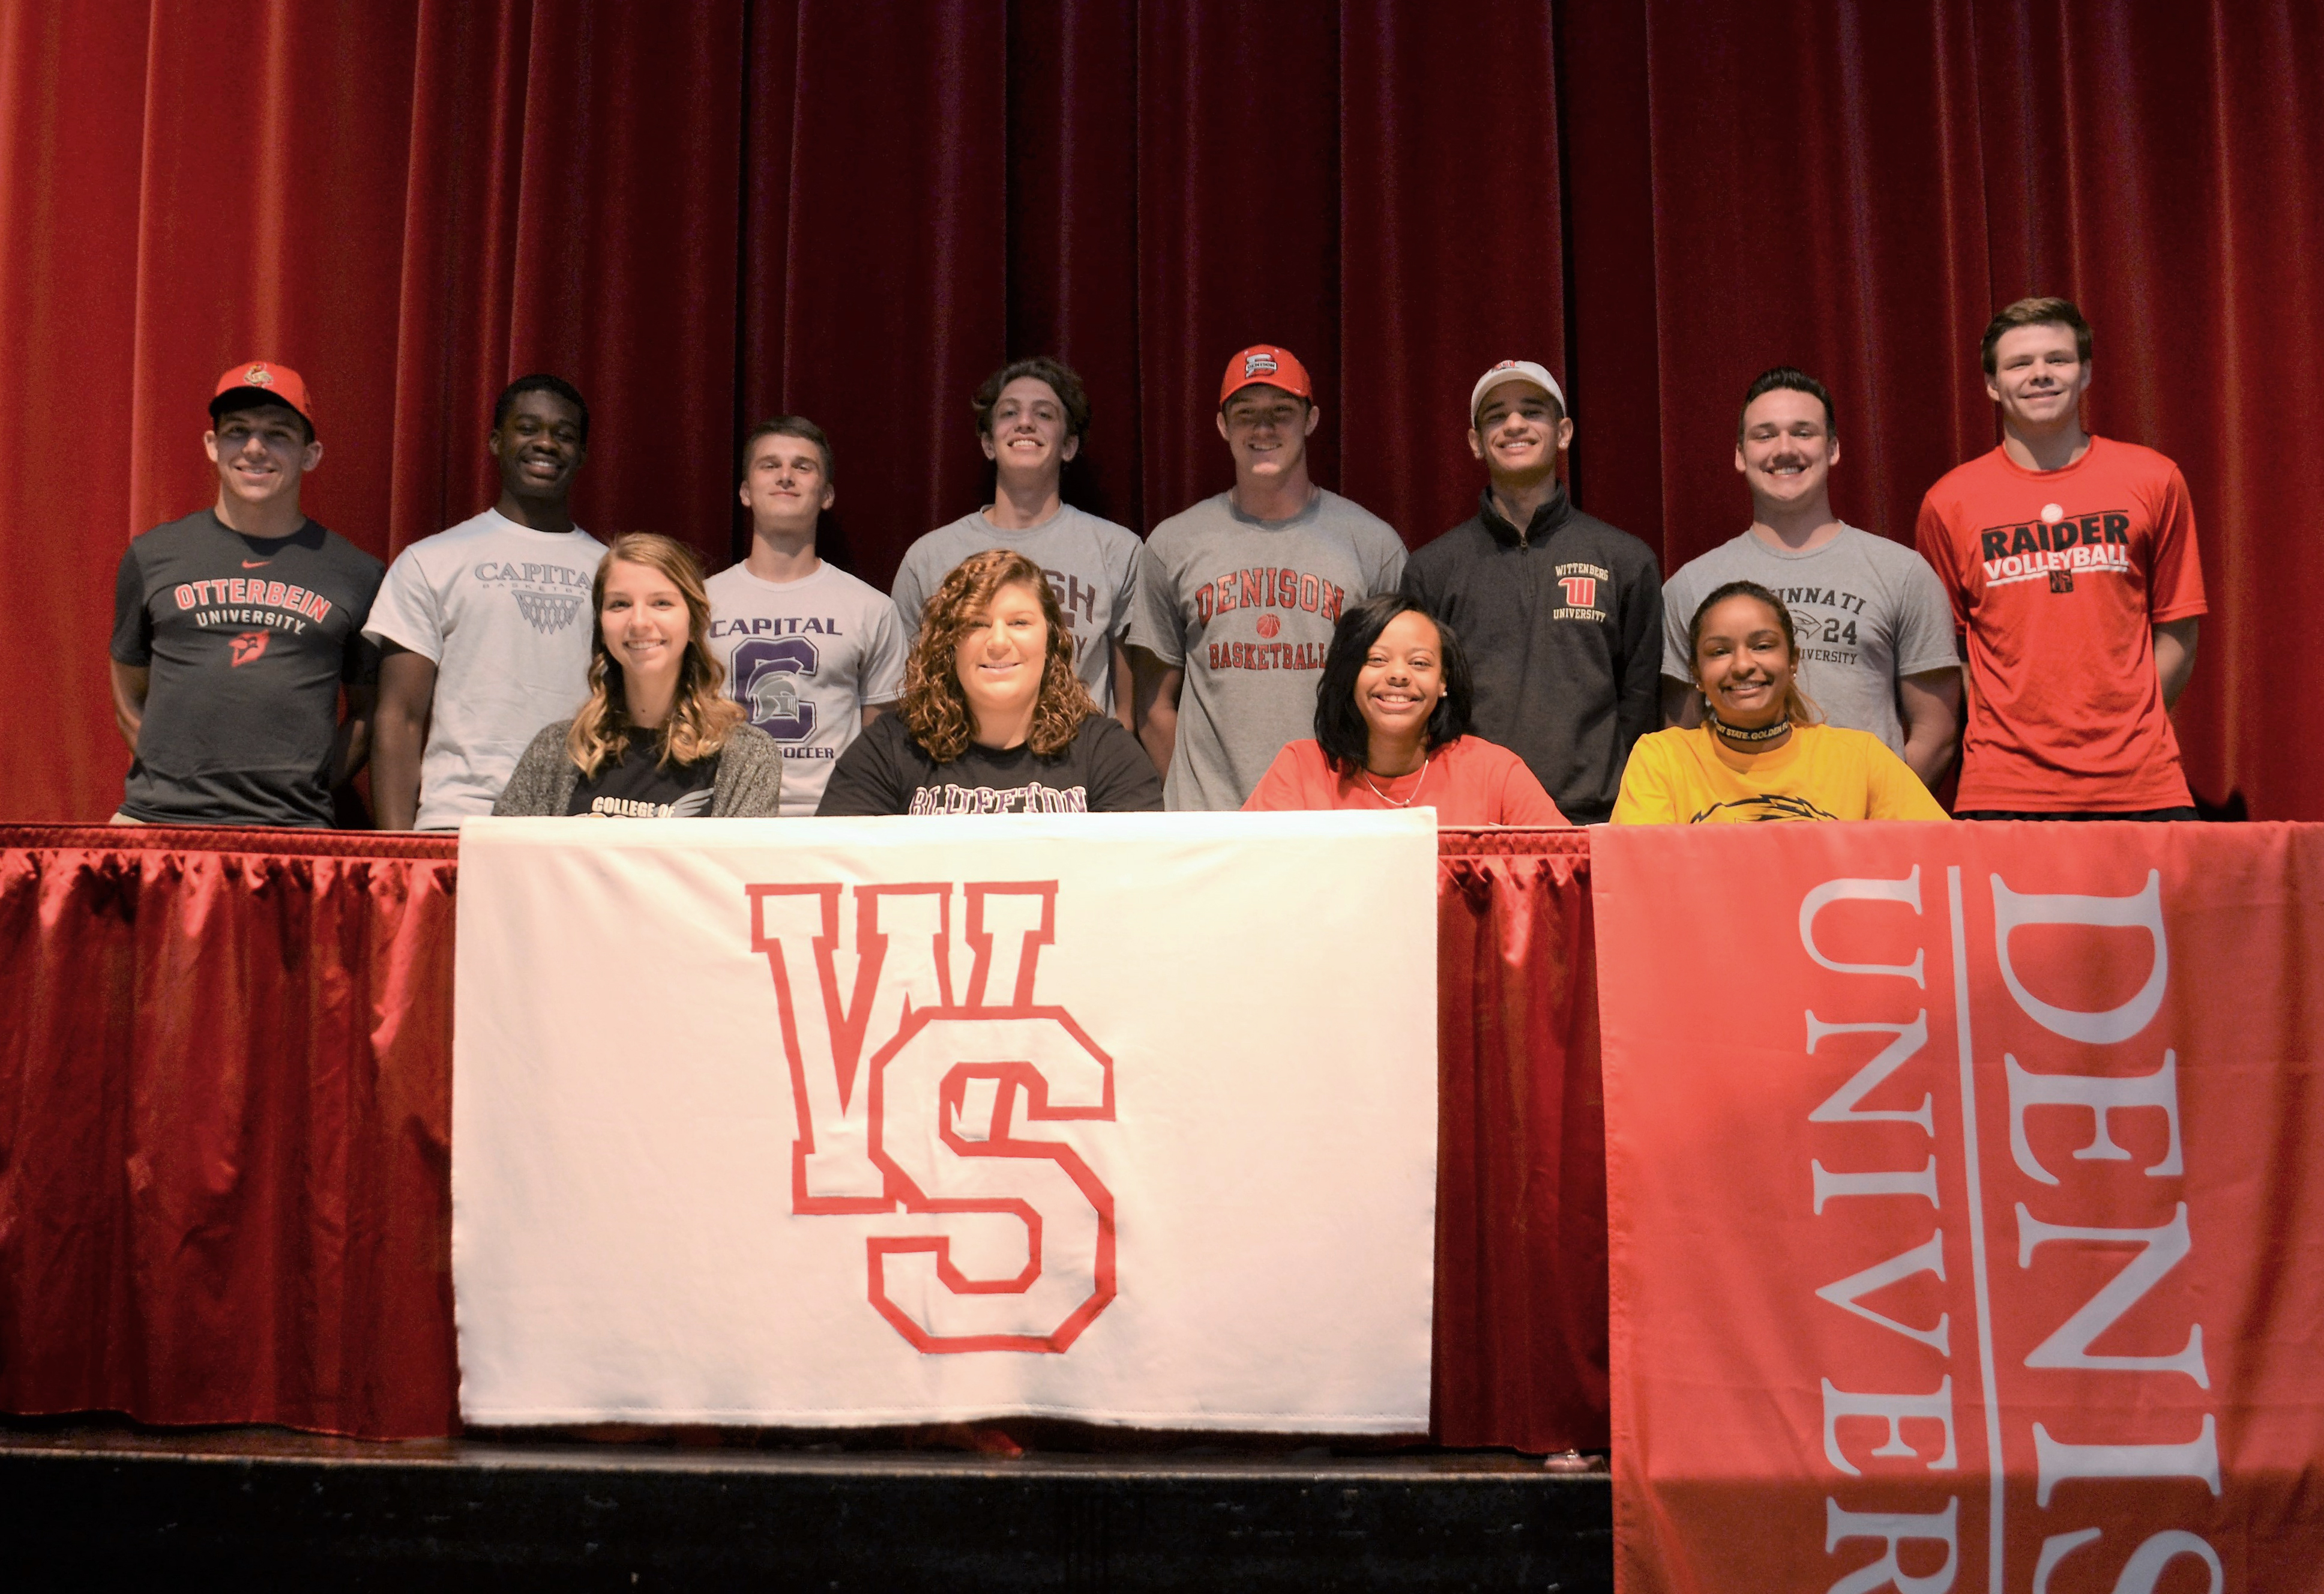 Student athletes on stage after signing Letters of Intent